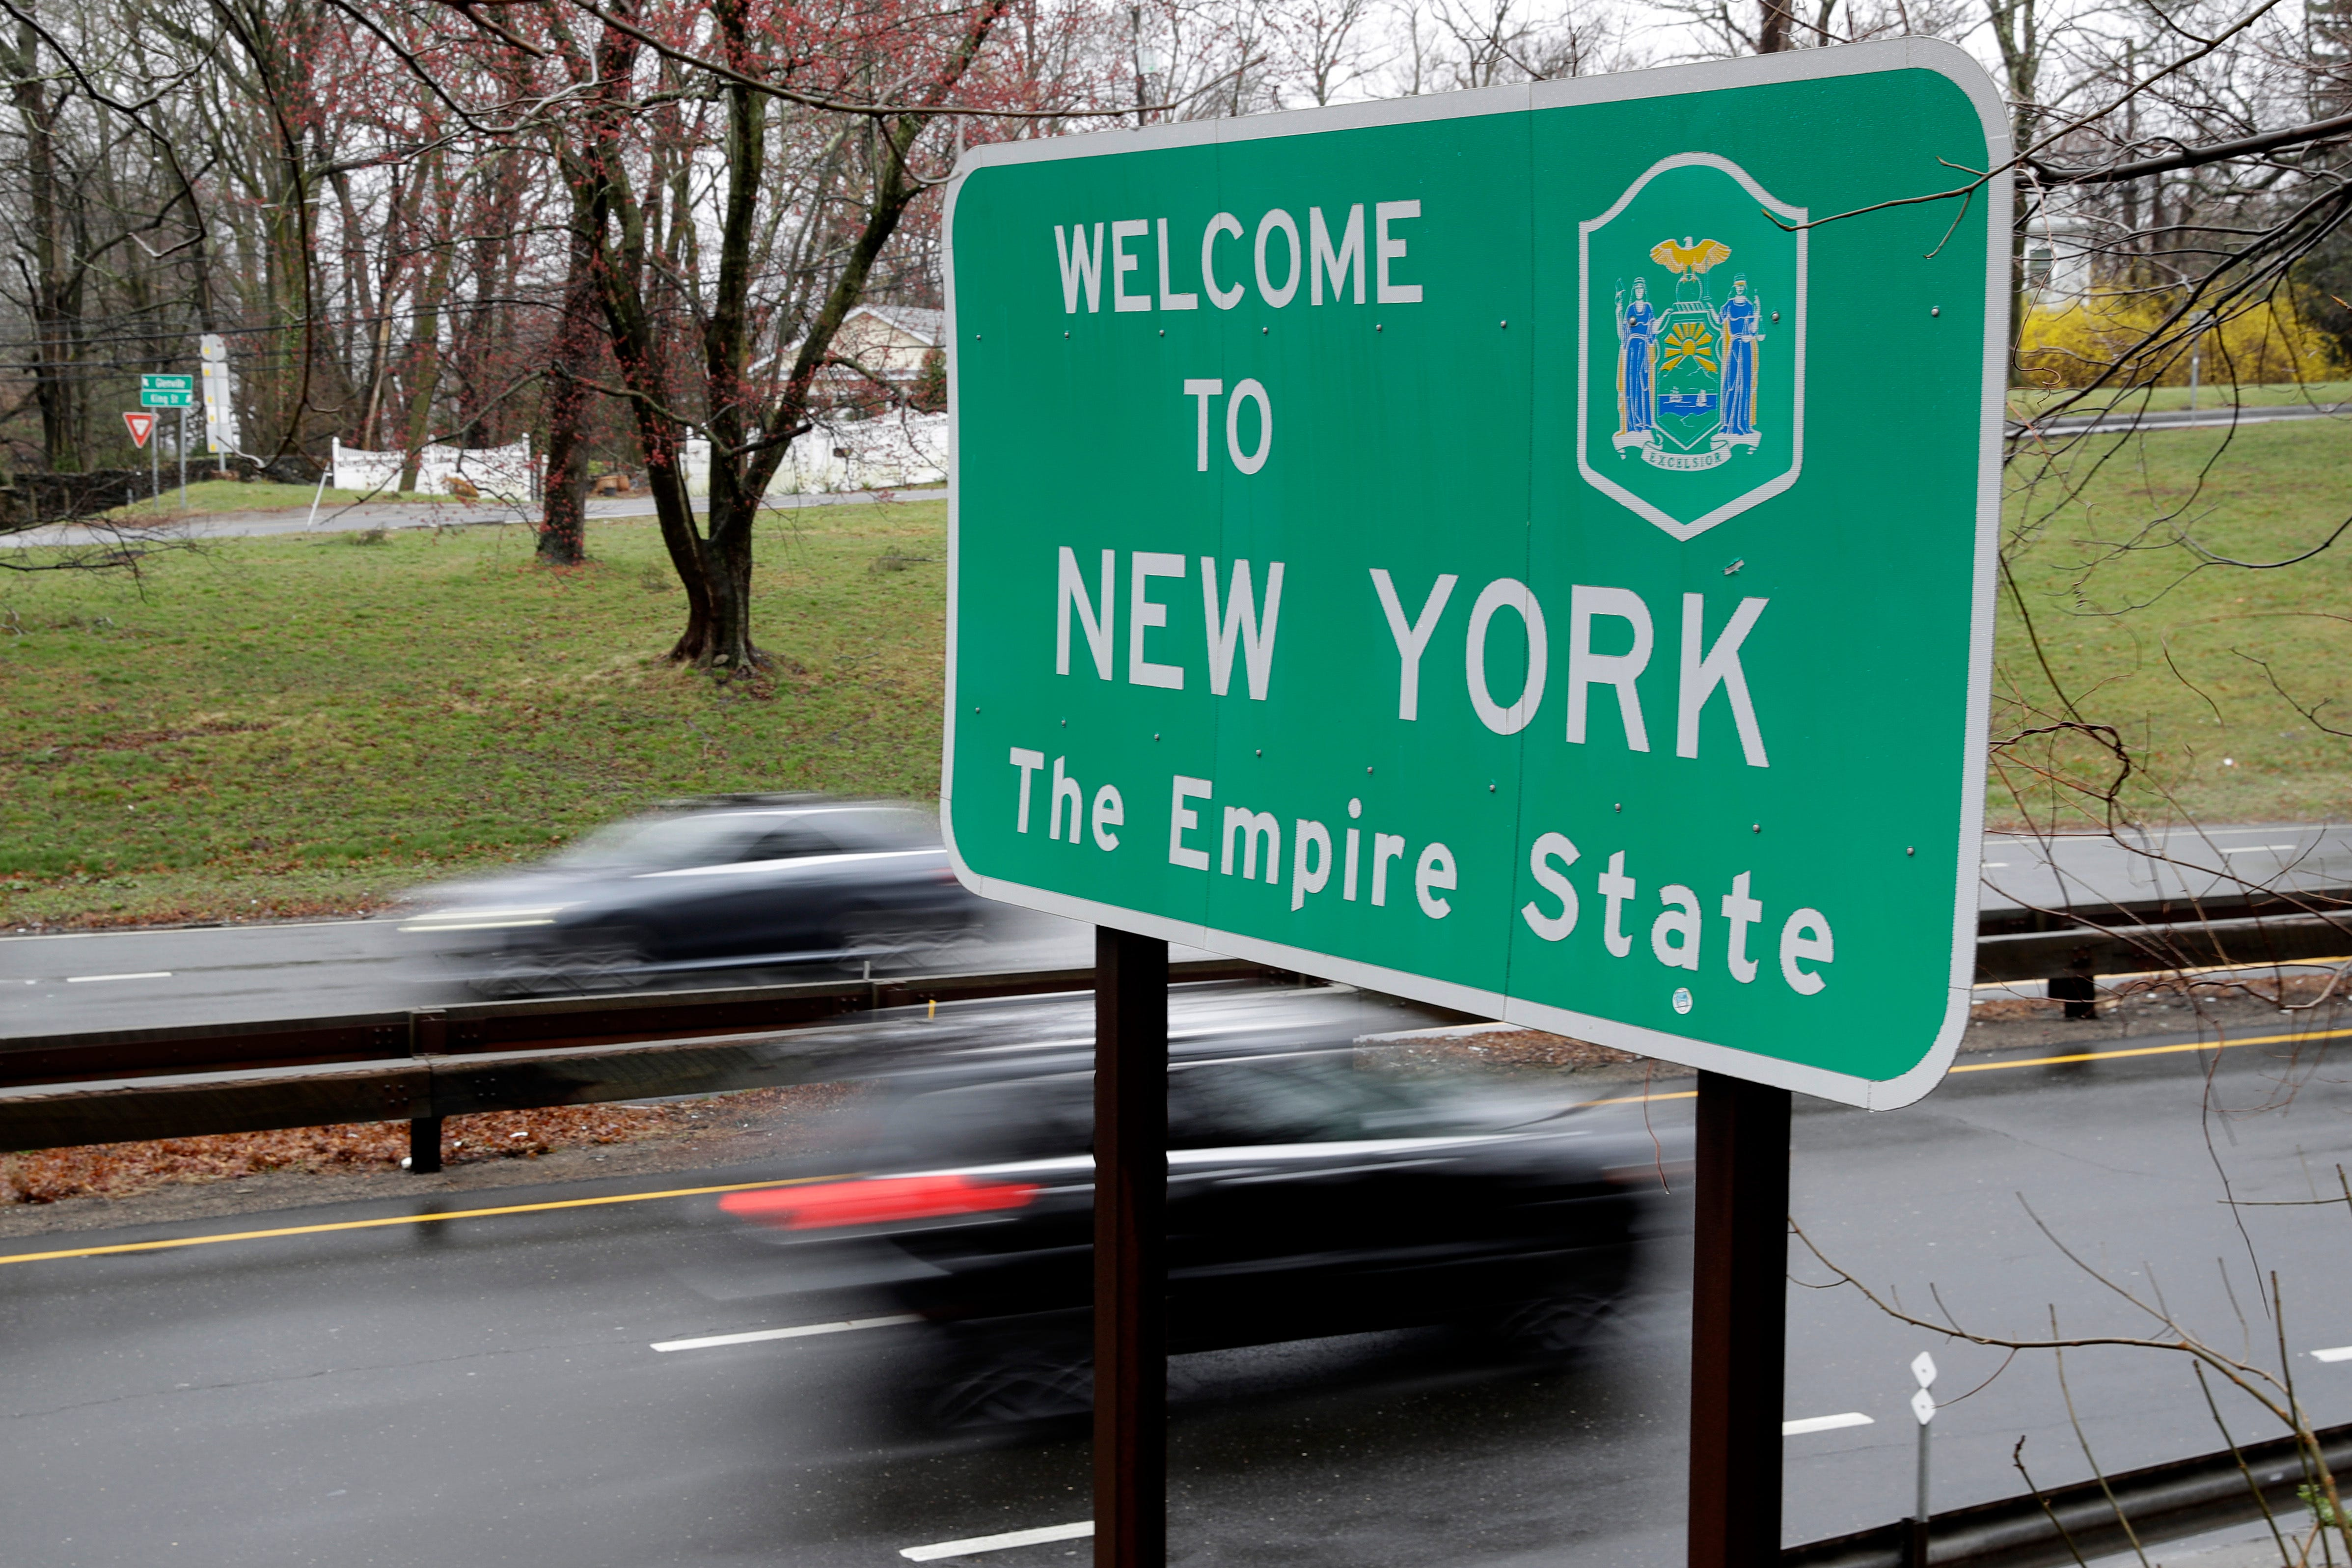 New York City sets checkpoints for visitors from states with high COVID-19 rates